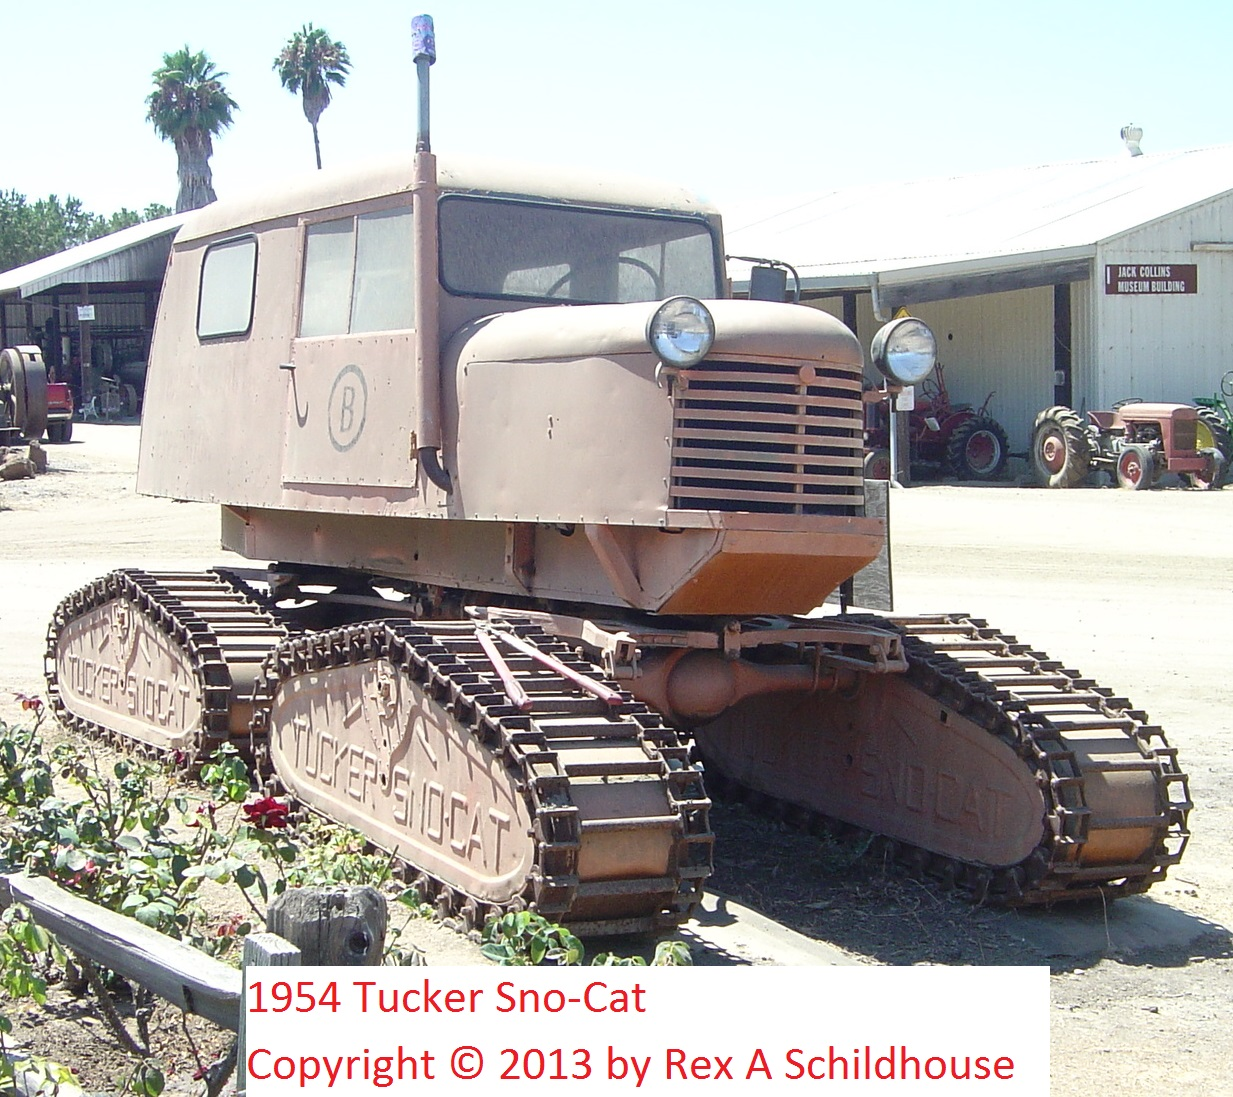 1954 Tucker Sno-Cat